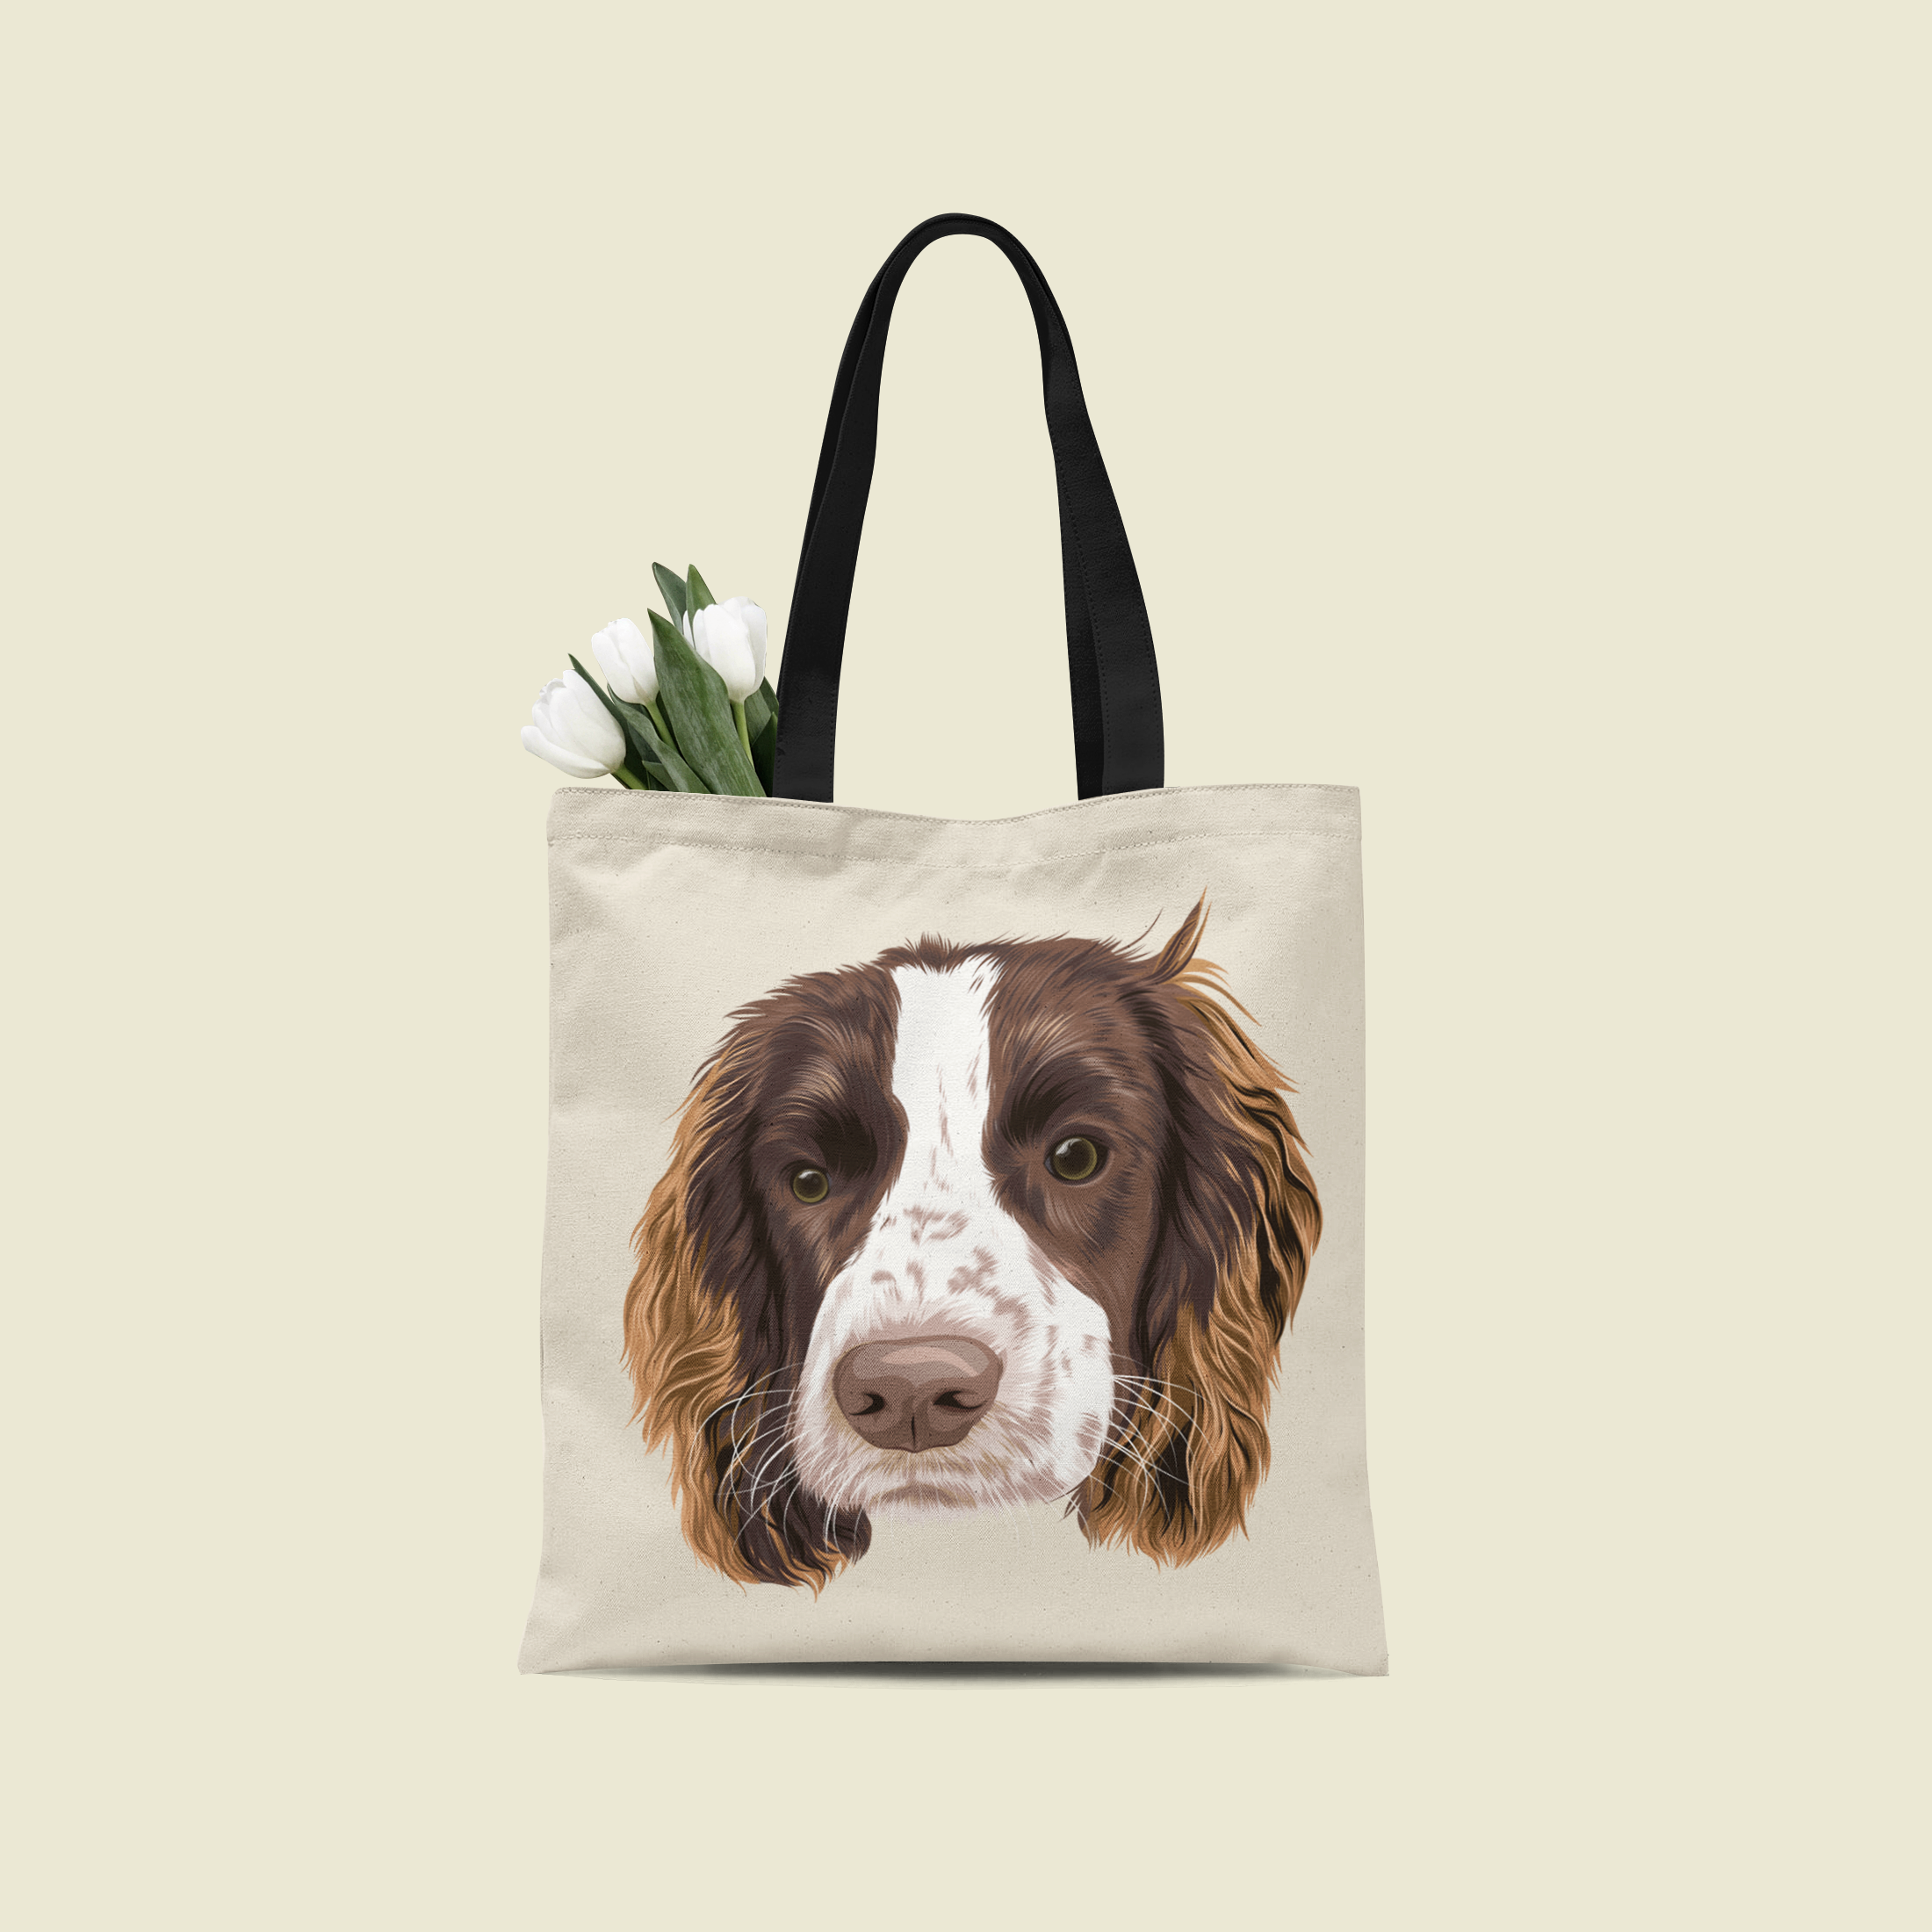 Tote Bag From We Furry